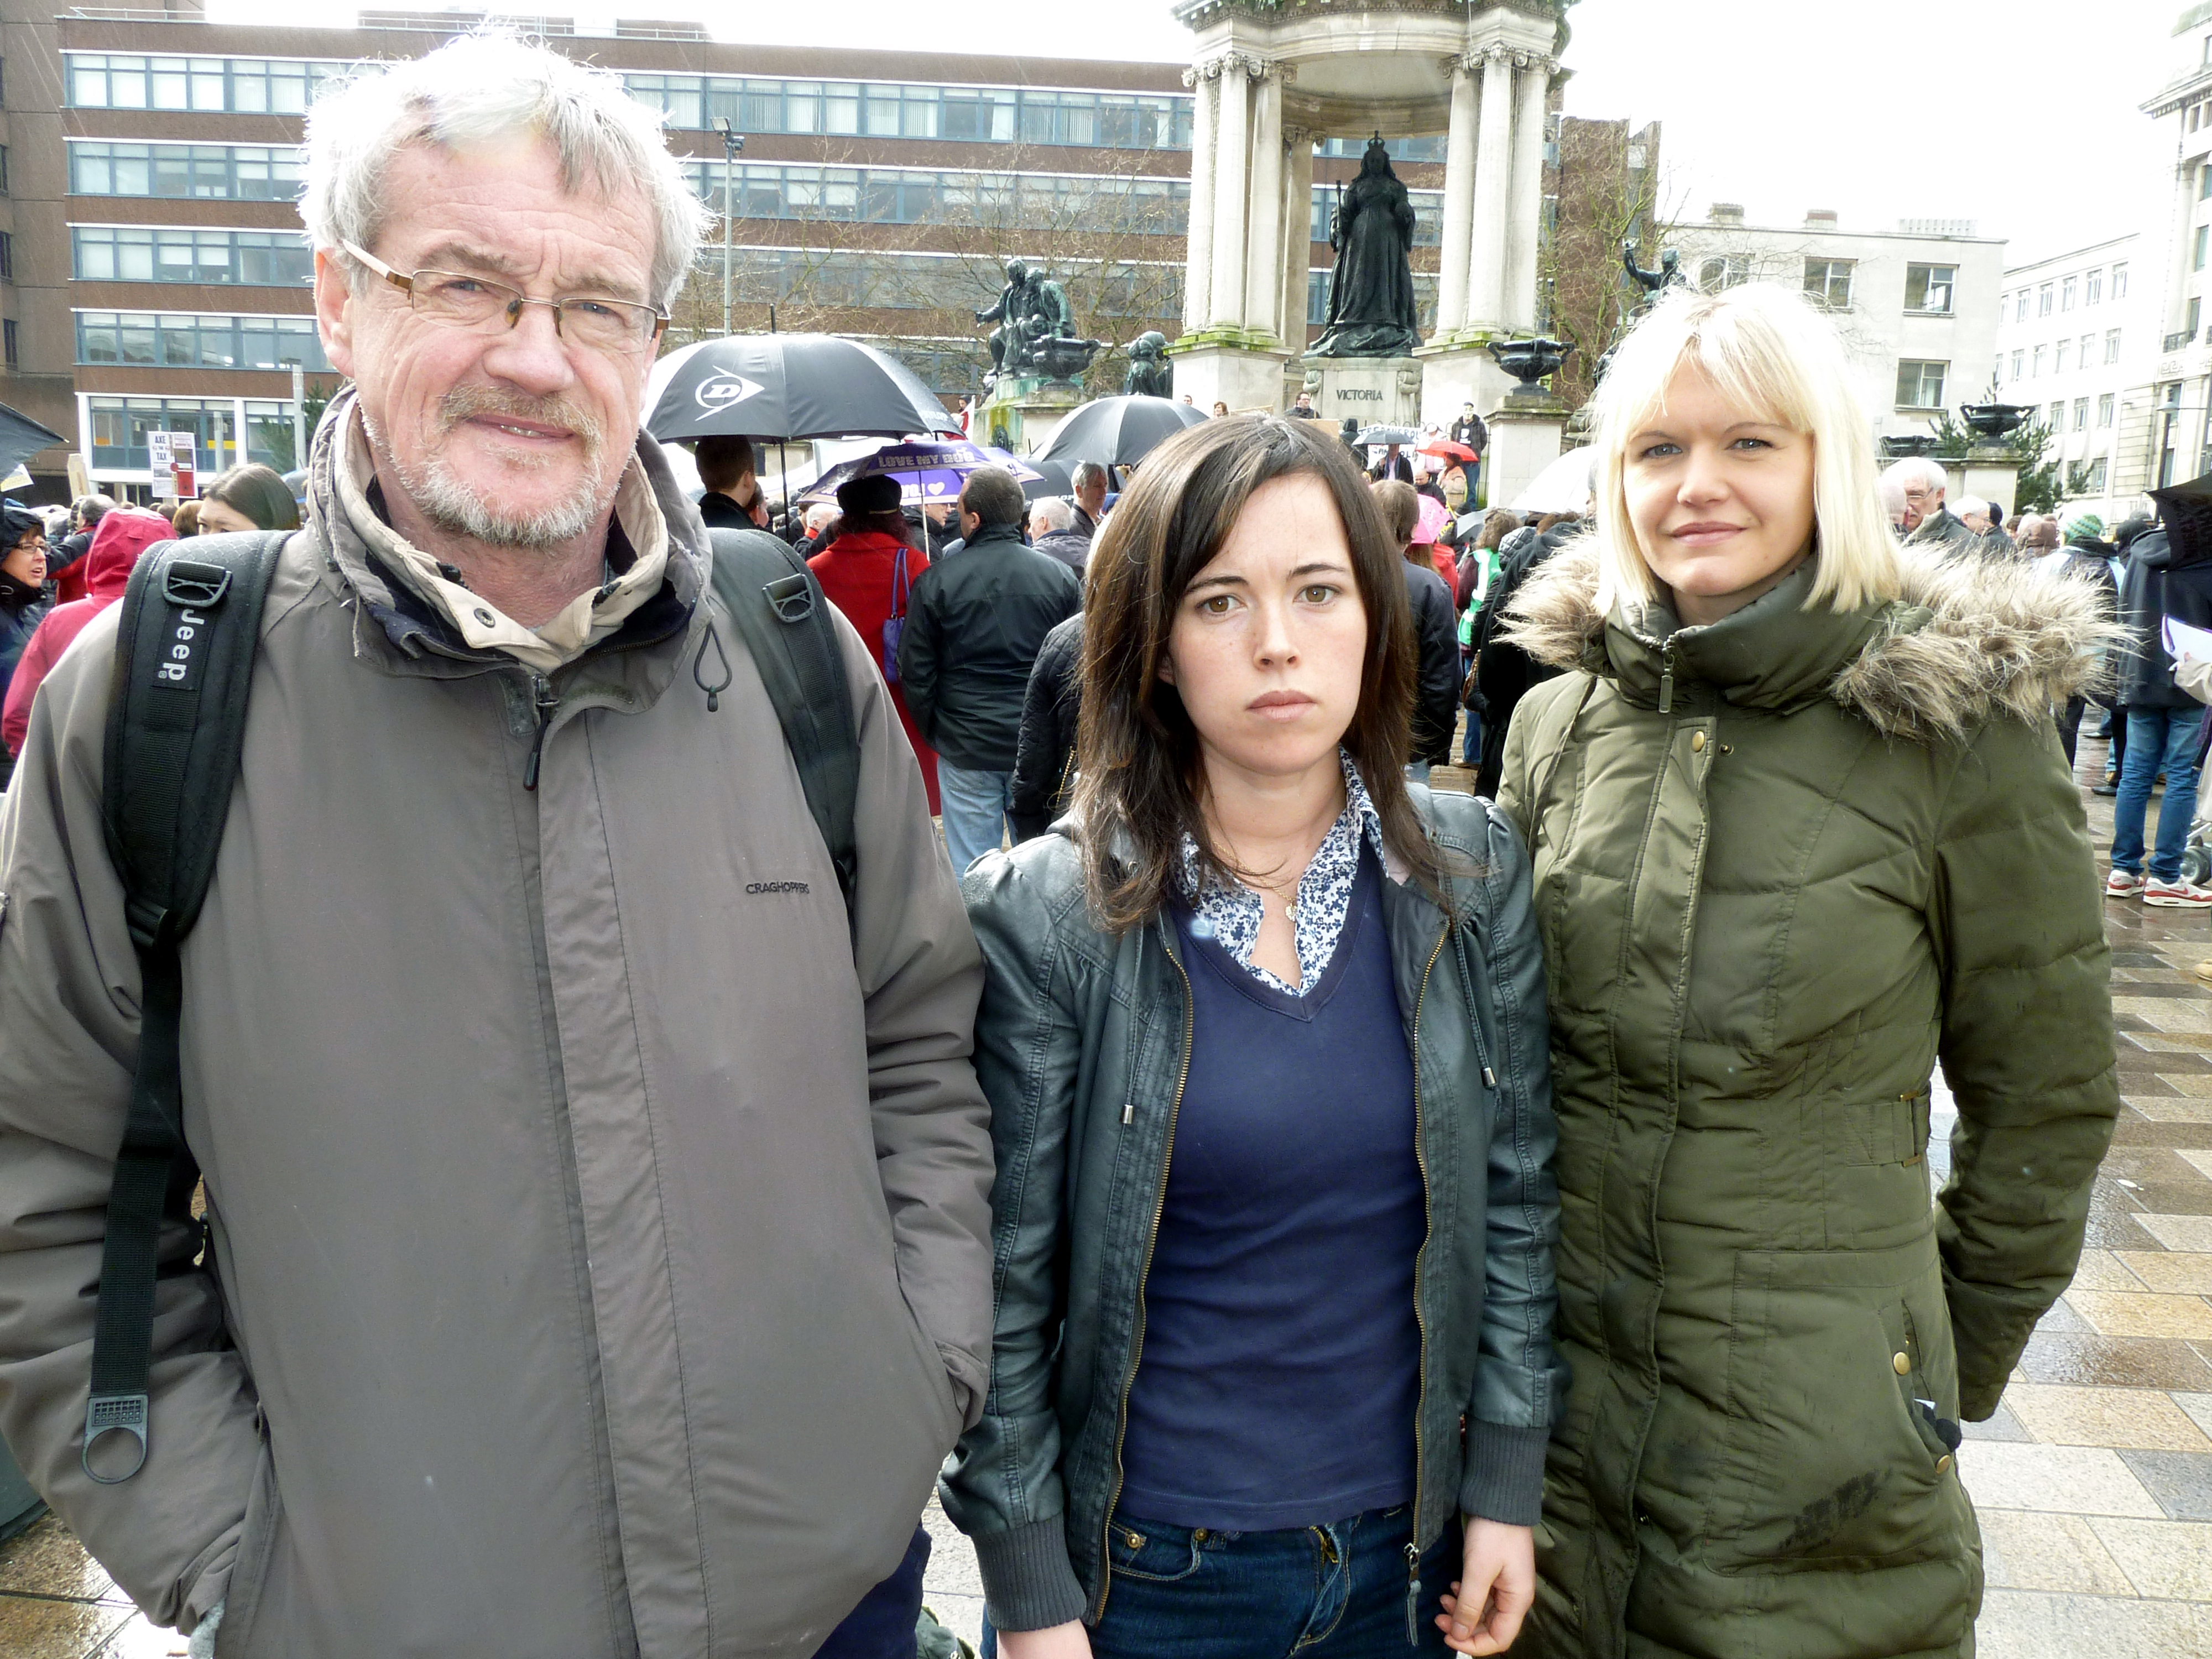 Liverpool Bedroom Tax demo organisers Debra Power and Claire Chappel from Lydiate.